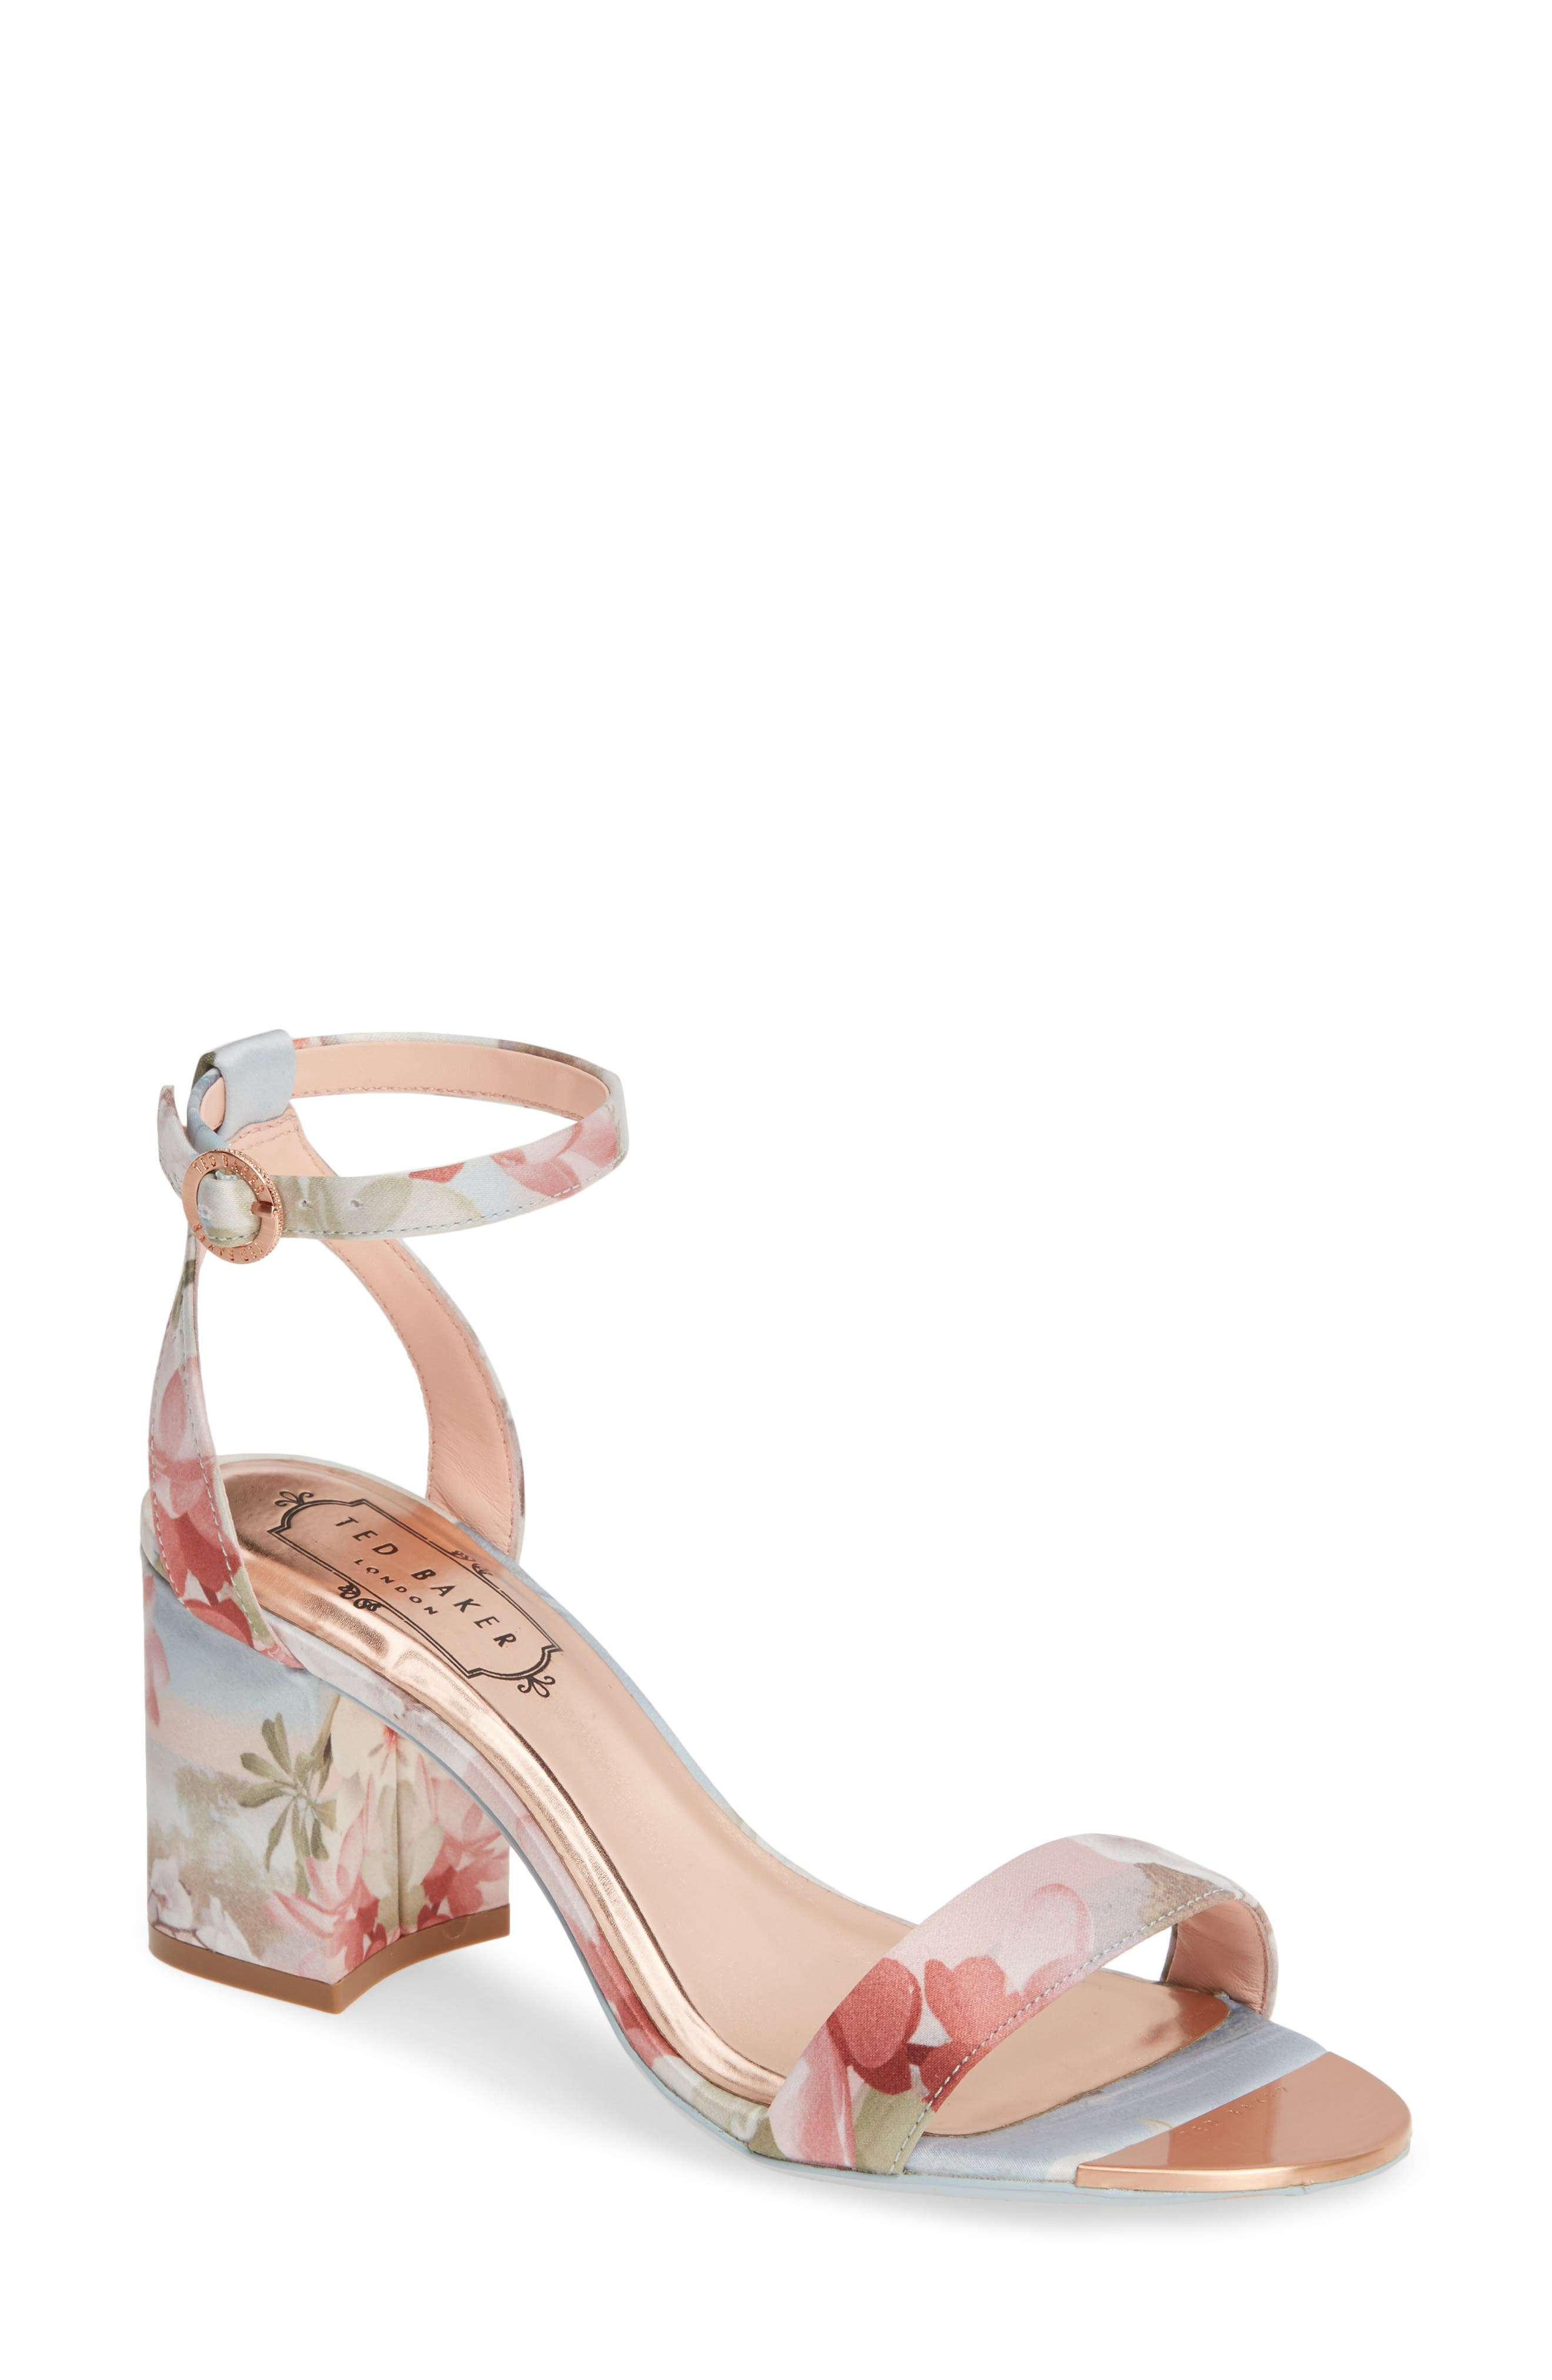 Rozie Block Heel Sandal, Main, color, PALE BLUE SATIN